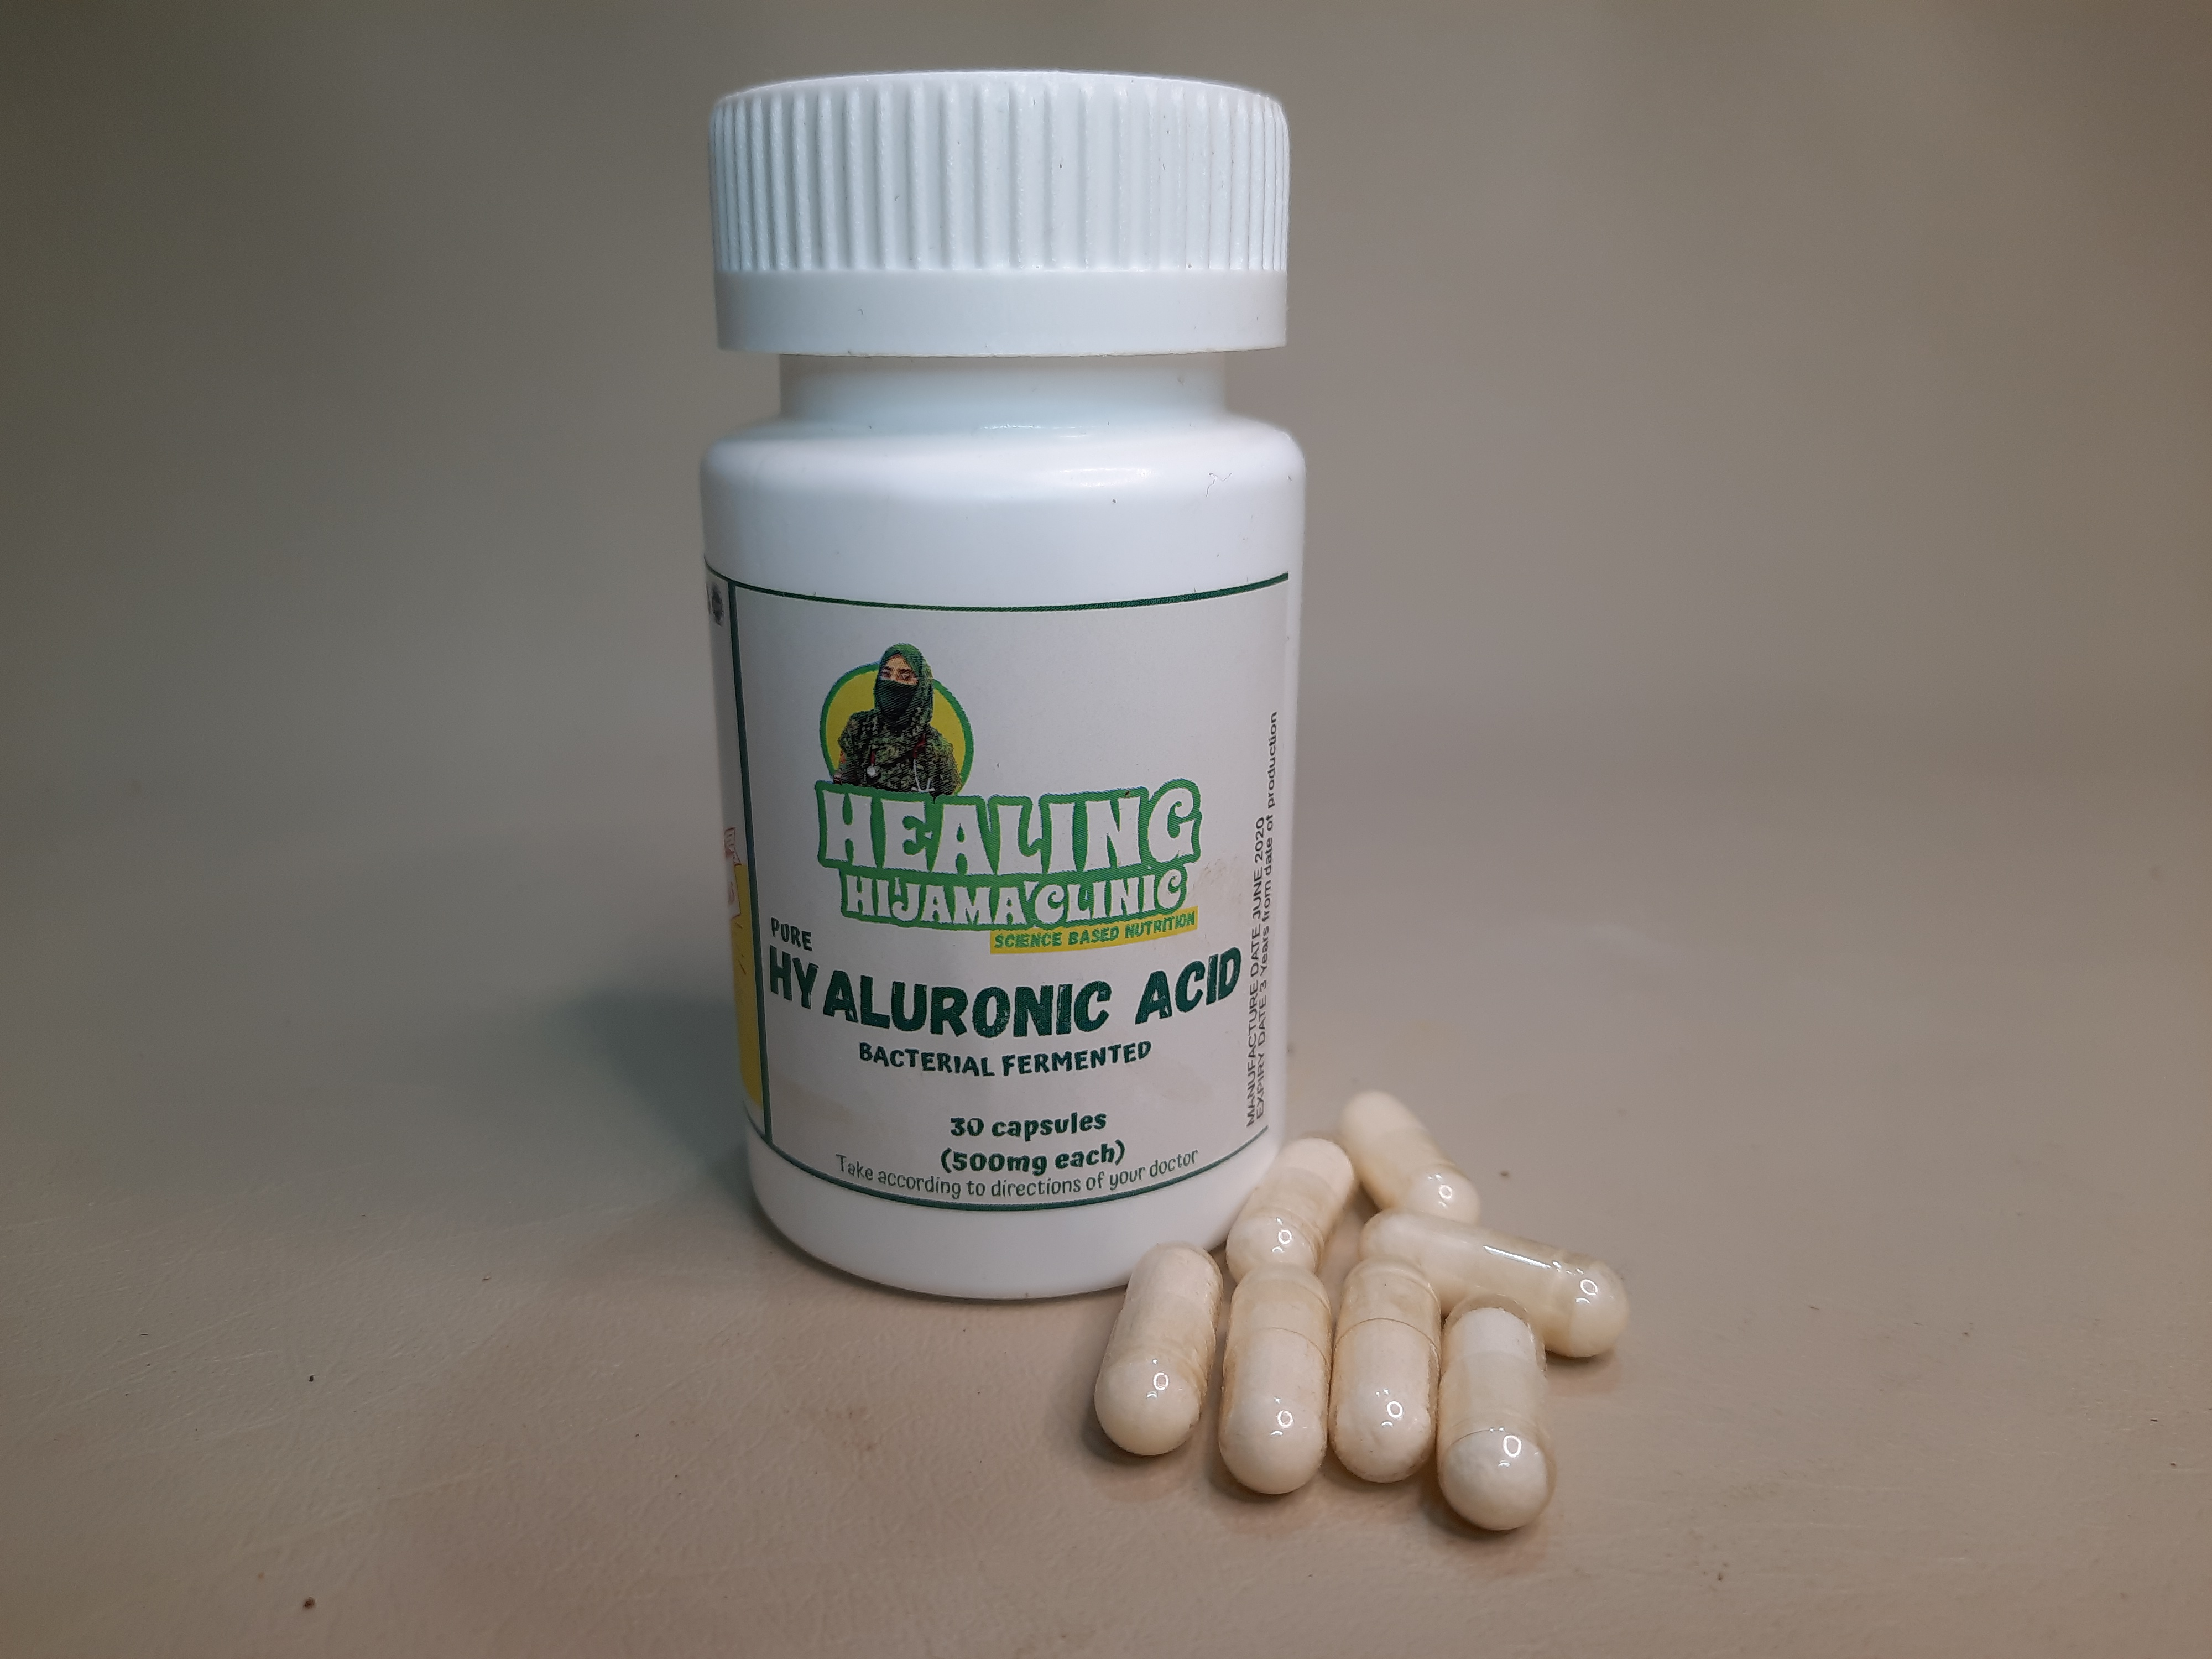 HYALURONIC ACID for 30 capsules of 500mg